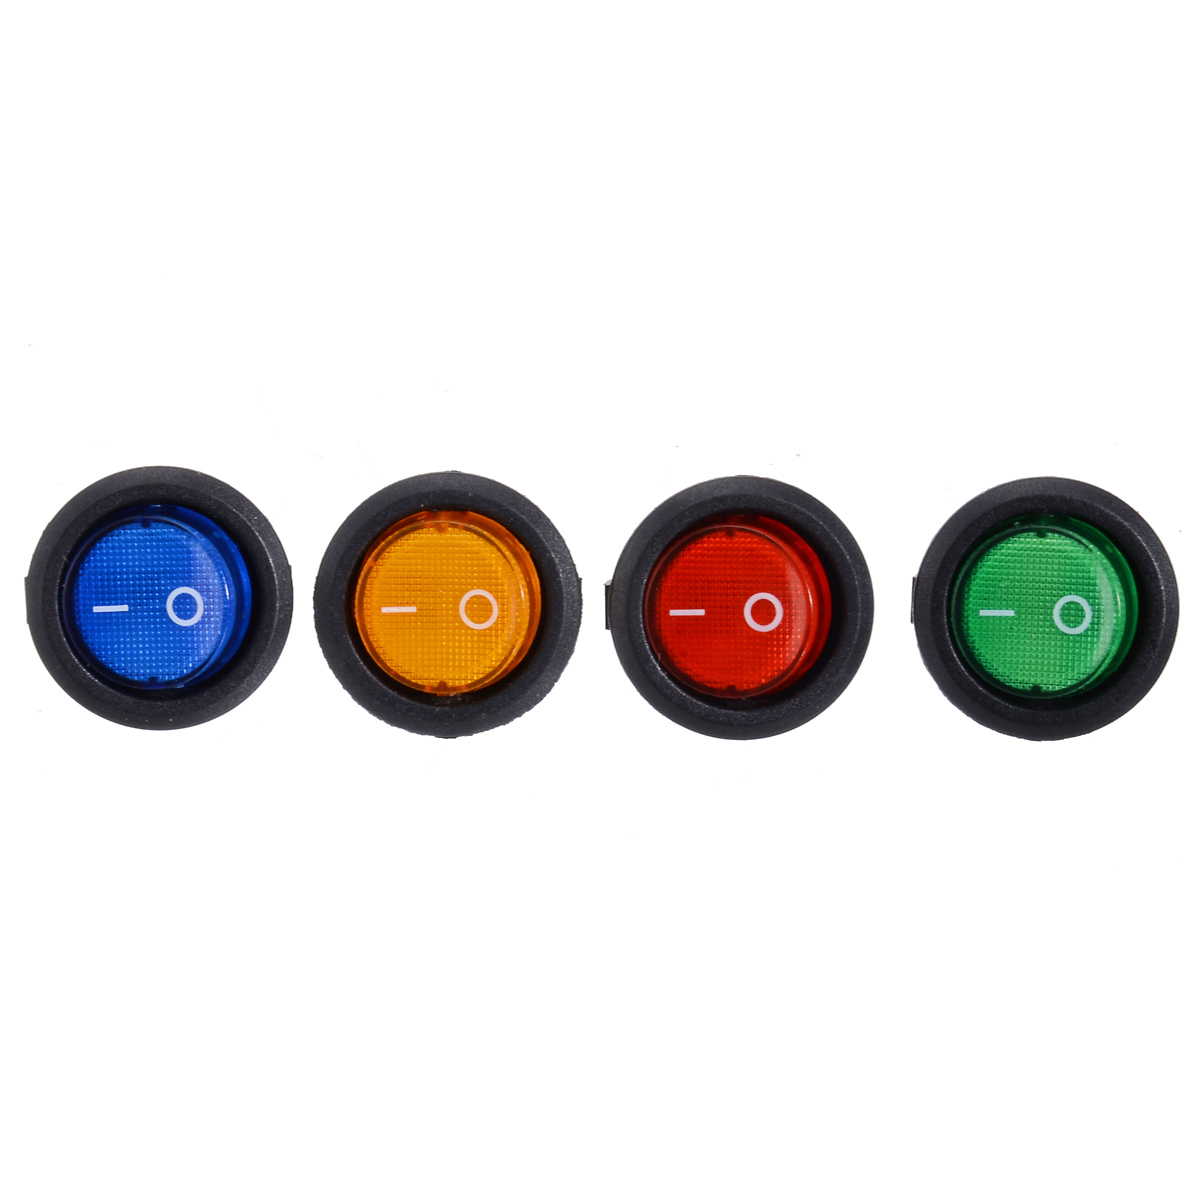 4pcs/set LED 12V 16A Car Boat ON/OFF LED Round Dot Rocker Toggle Switch SPST Switch 4 Colors Red/ Blue/ Green/ Yellow-in Car Switches & Relays from Automobiles & Motorcycles